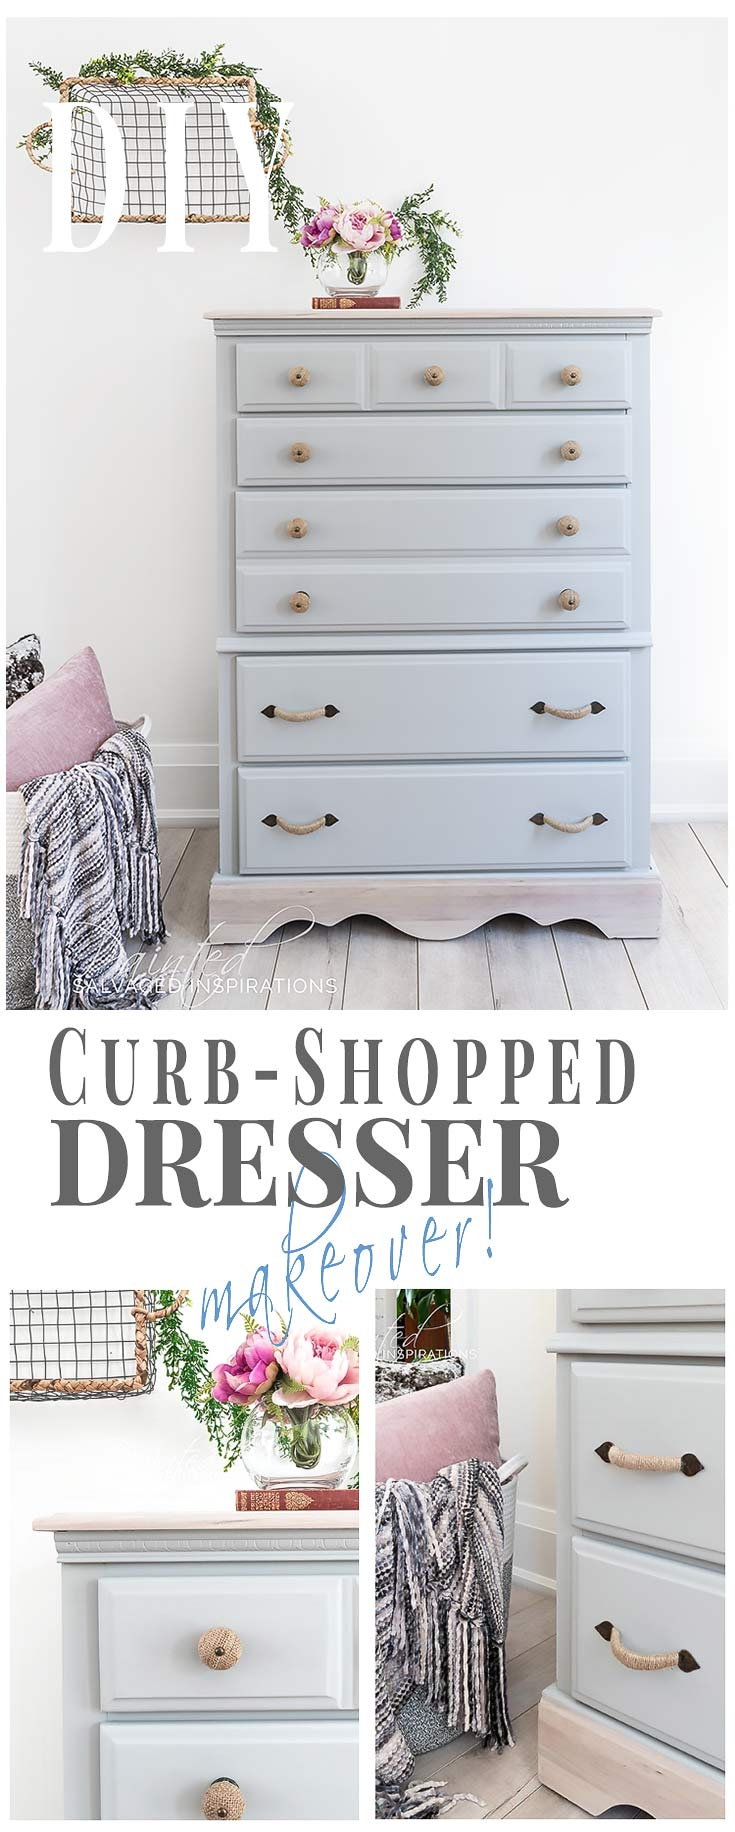 DIY CurbShopped Dresser Makeover_